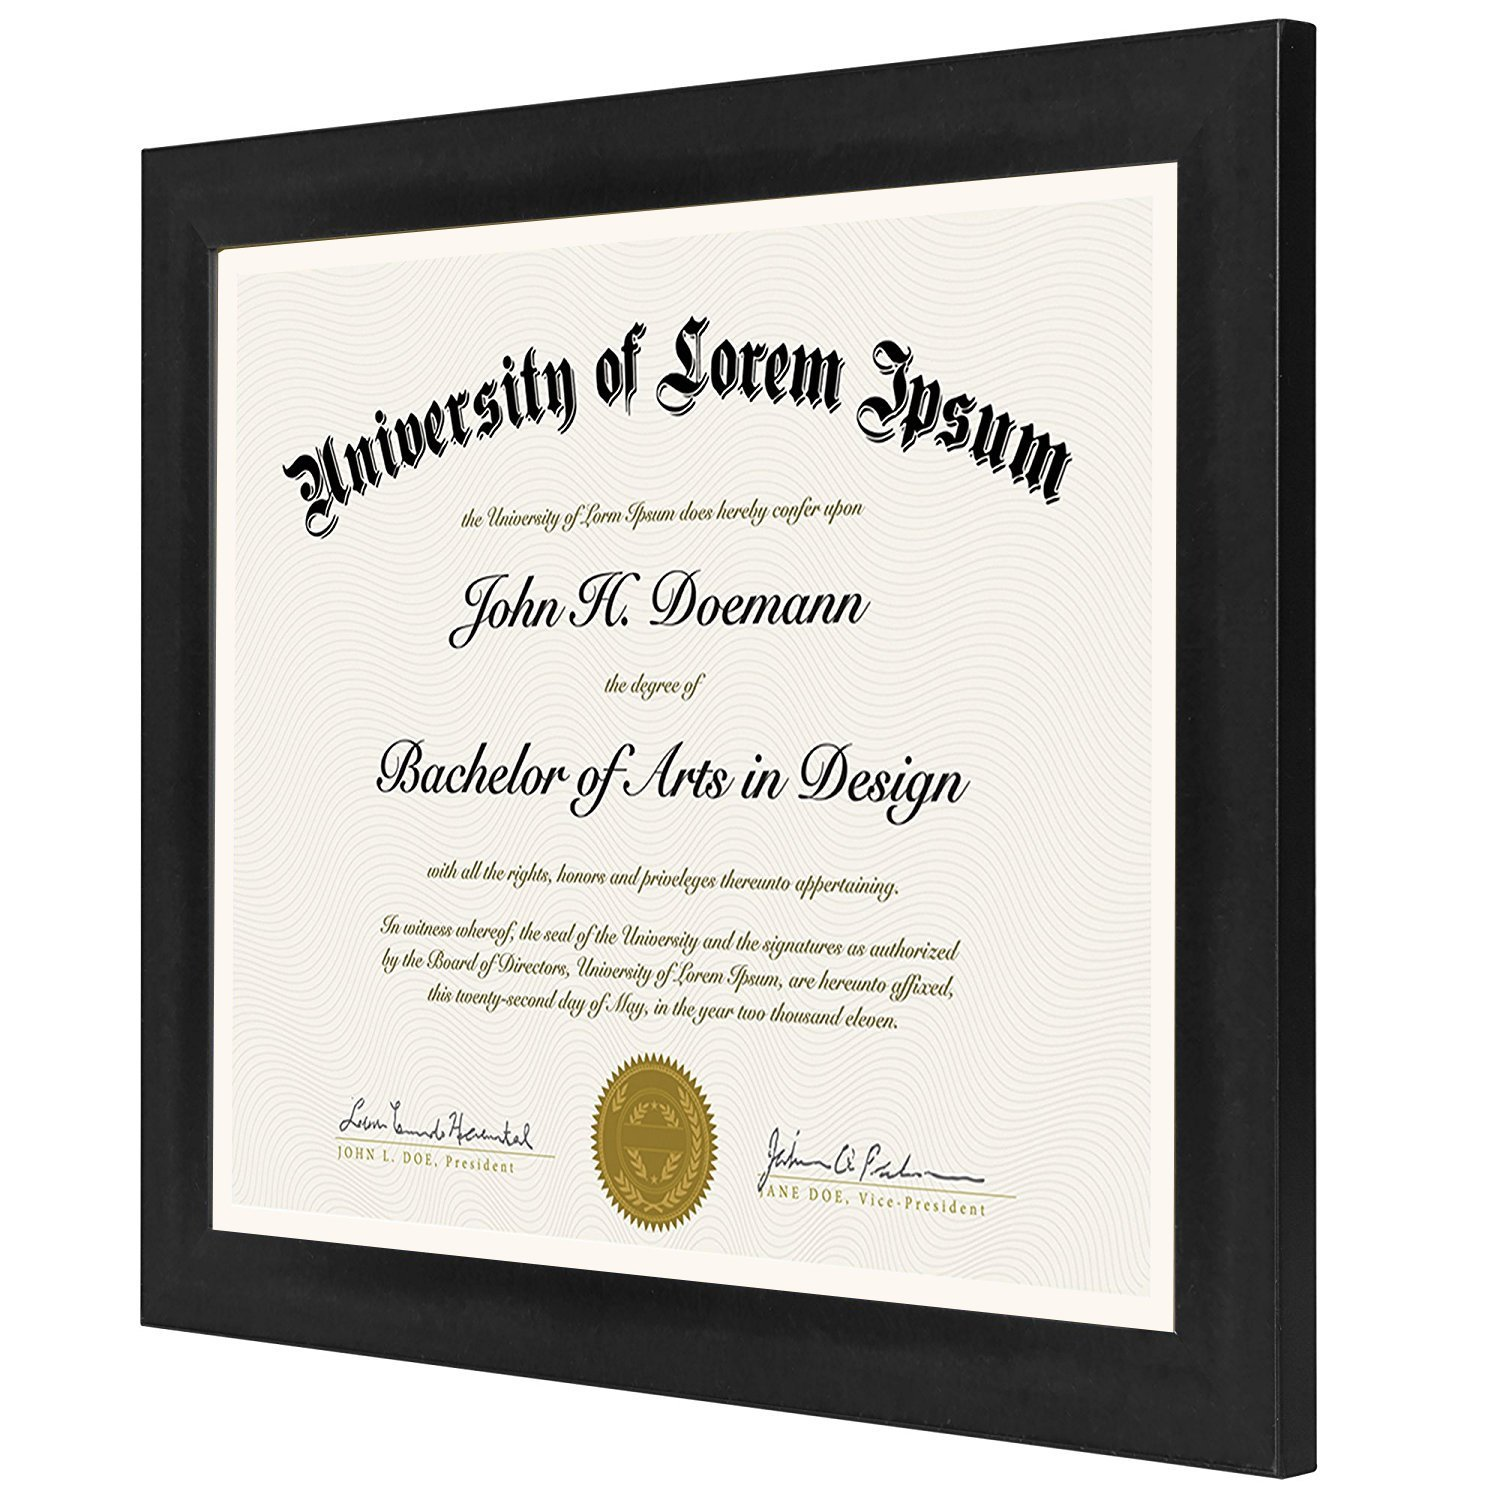 document frame made to display 85x11 inch document frames certificate frames standard paper frame walmartcom